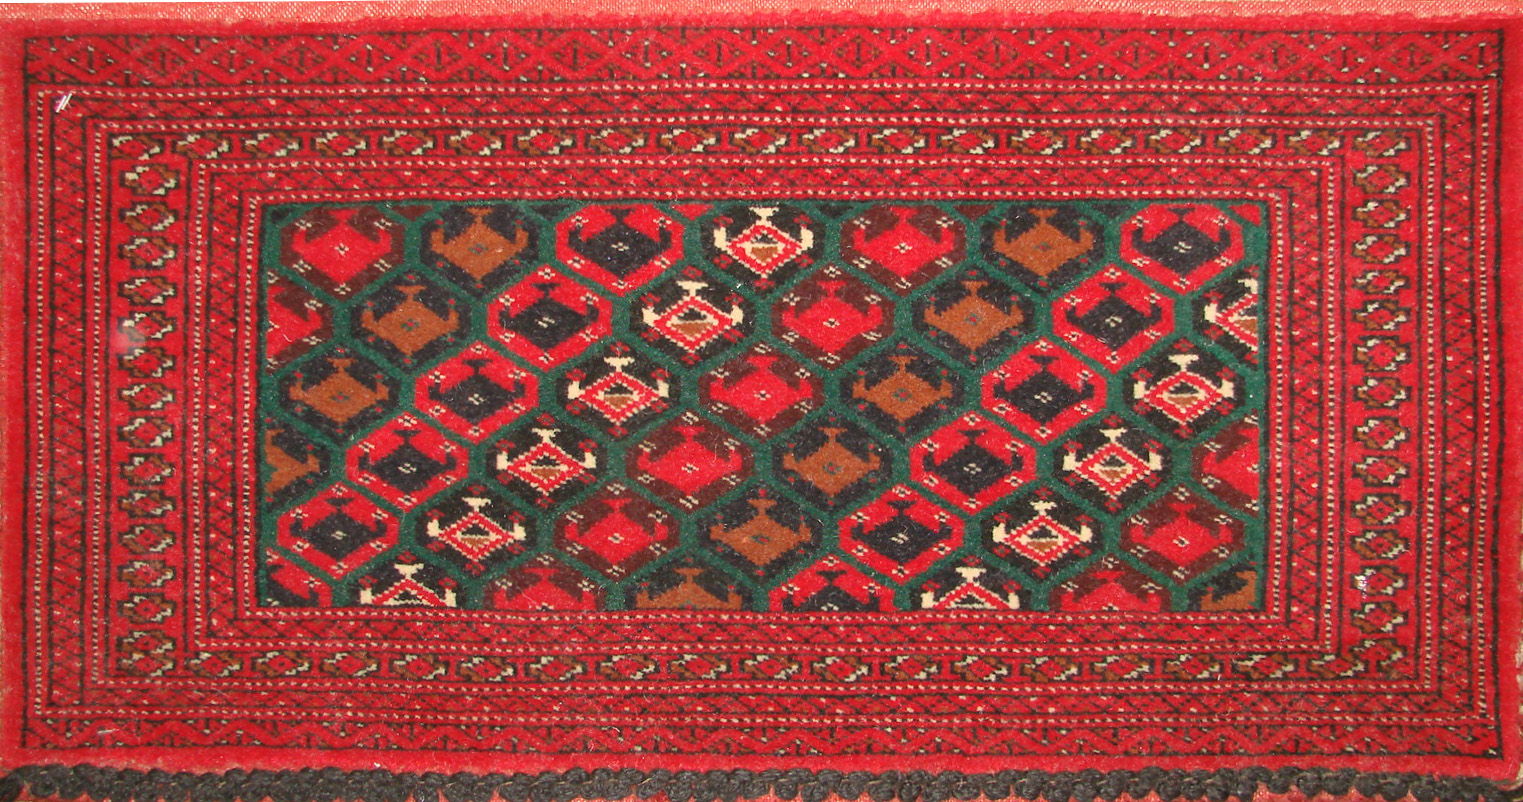 1.6X2 & SMALLER Bokhara Hand Knotted Wool Area Rug - MR19476